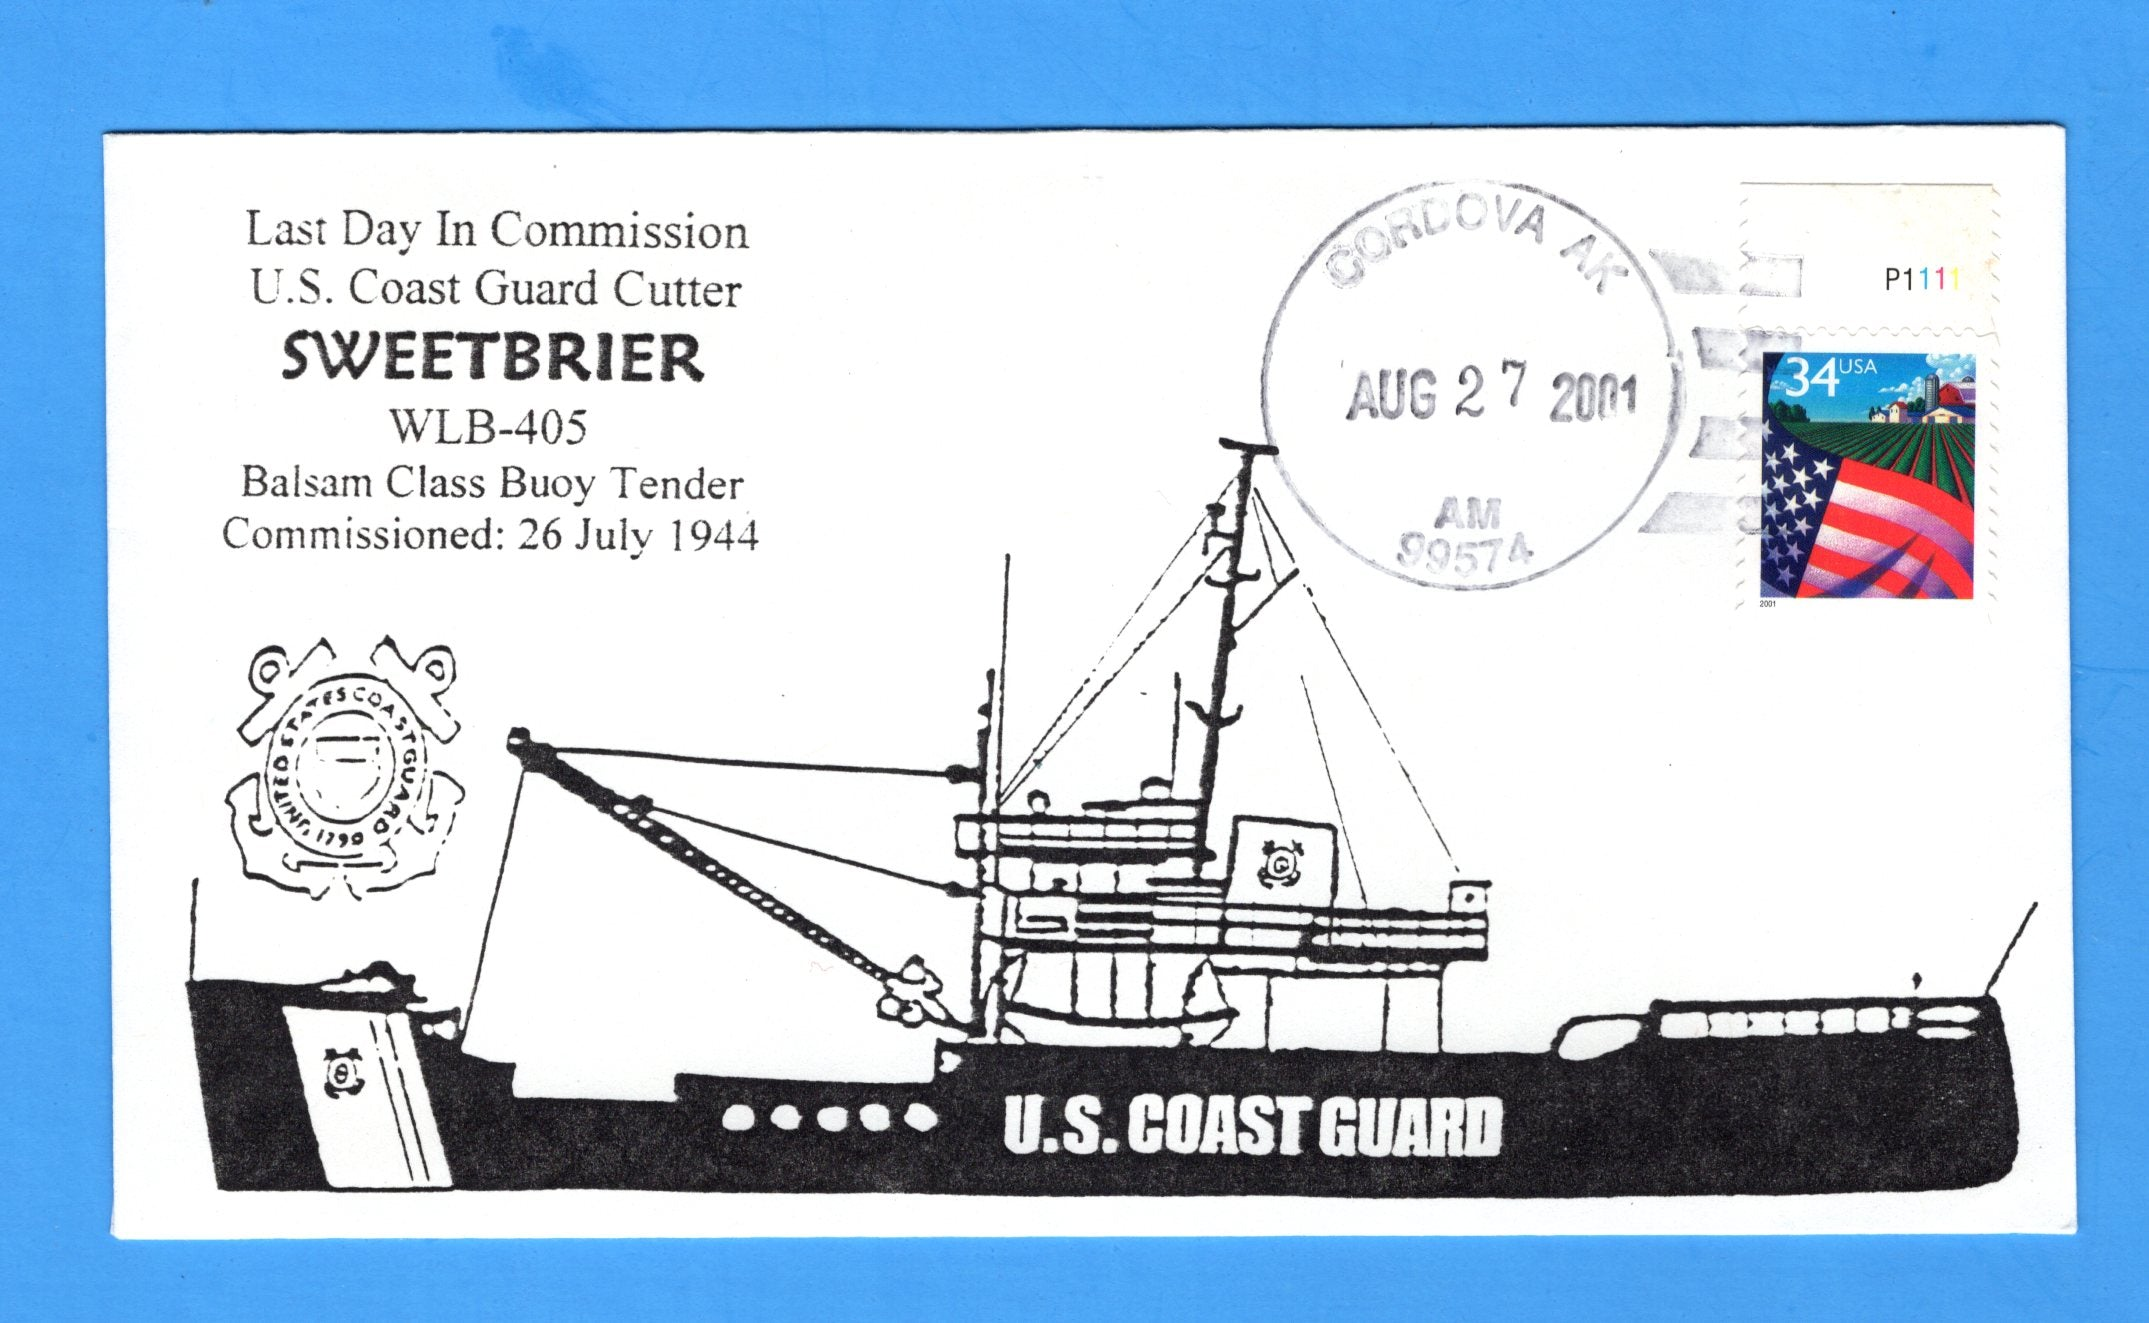 USCGC Sweetbrier WLB-405 Last Day in Commission August 27, 2001 - Hand Drawn and Colored Cachet by Bill Everett